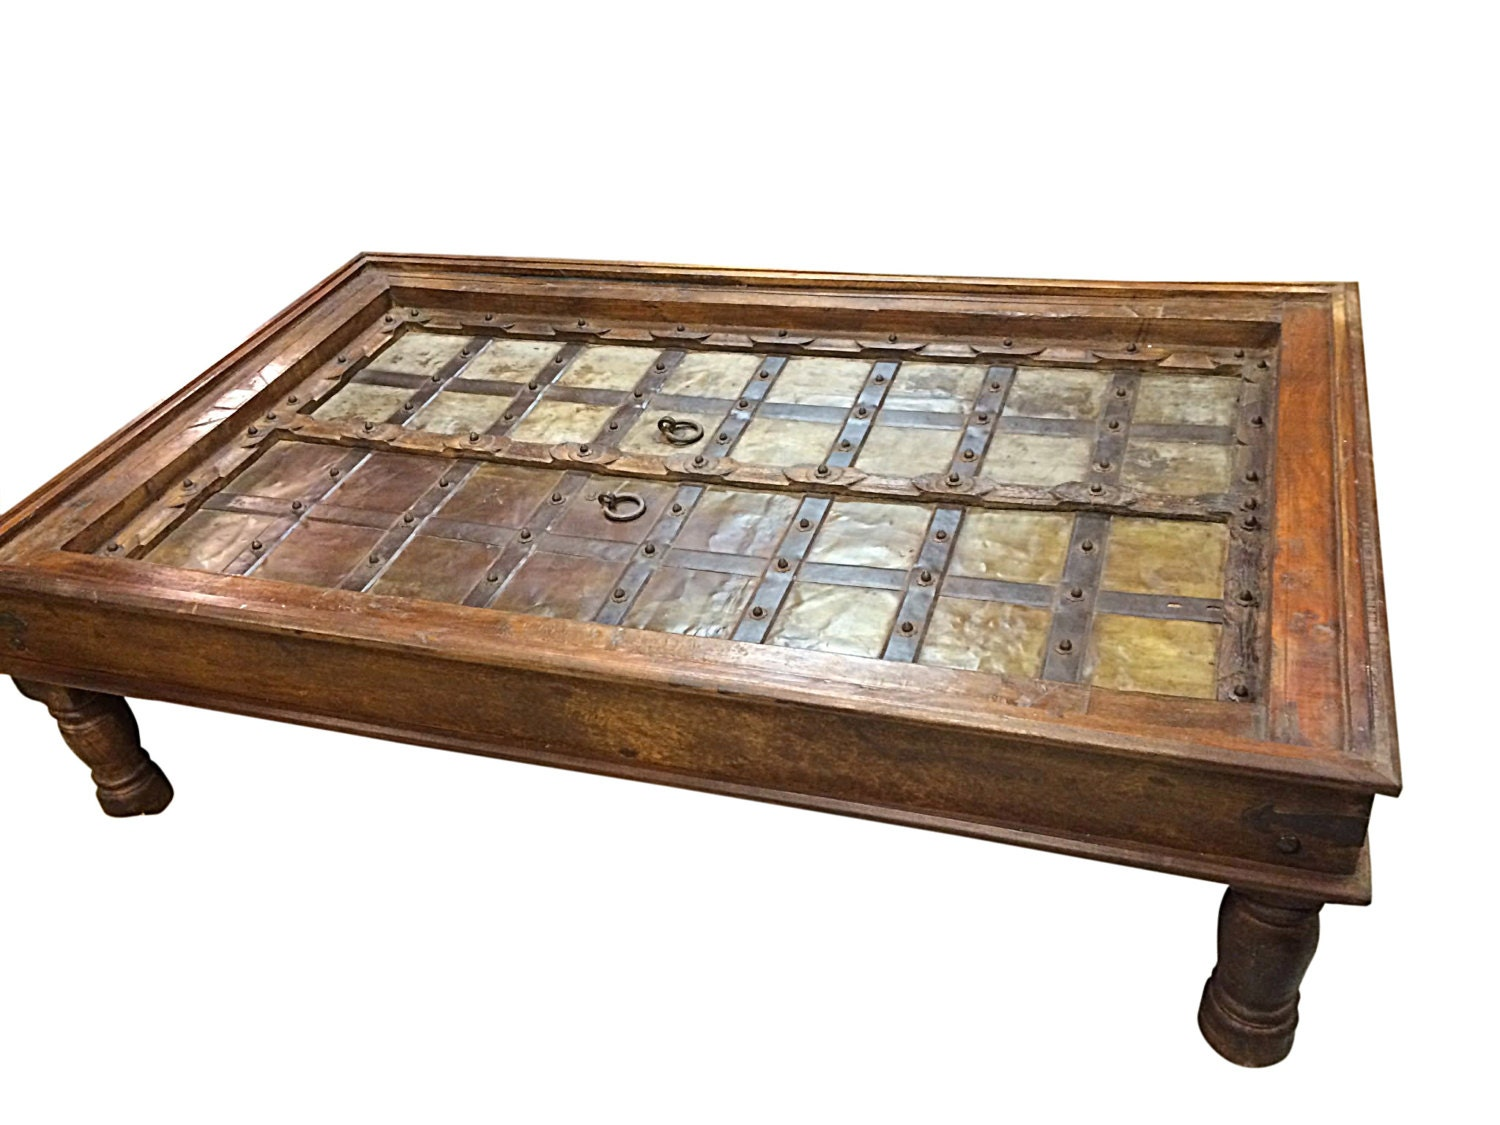 Antique coffee table indian furniture handmade by mogulgallery for Vintage coffee table